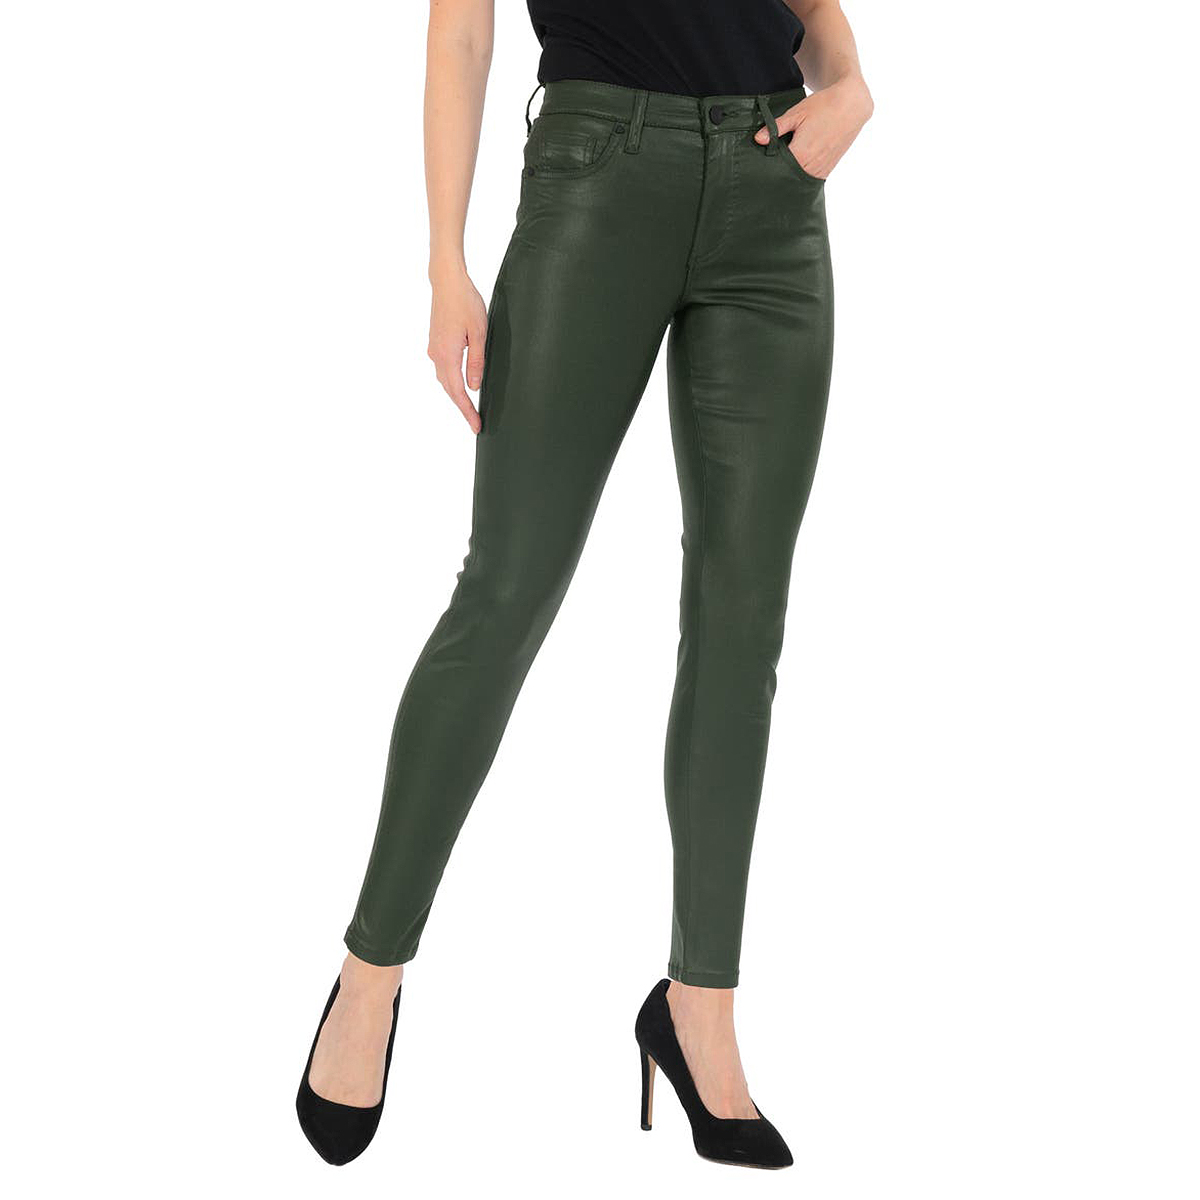 nordstrom-anniversary-sale-zara-style-kut-from-the-kloth-skinny-jeans